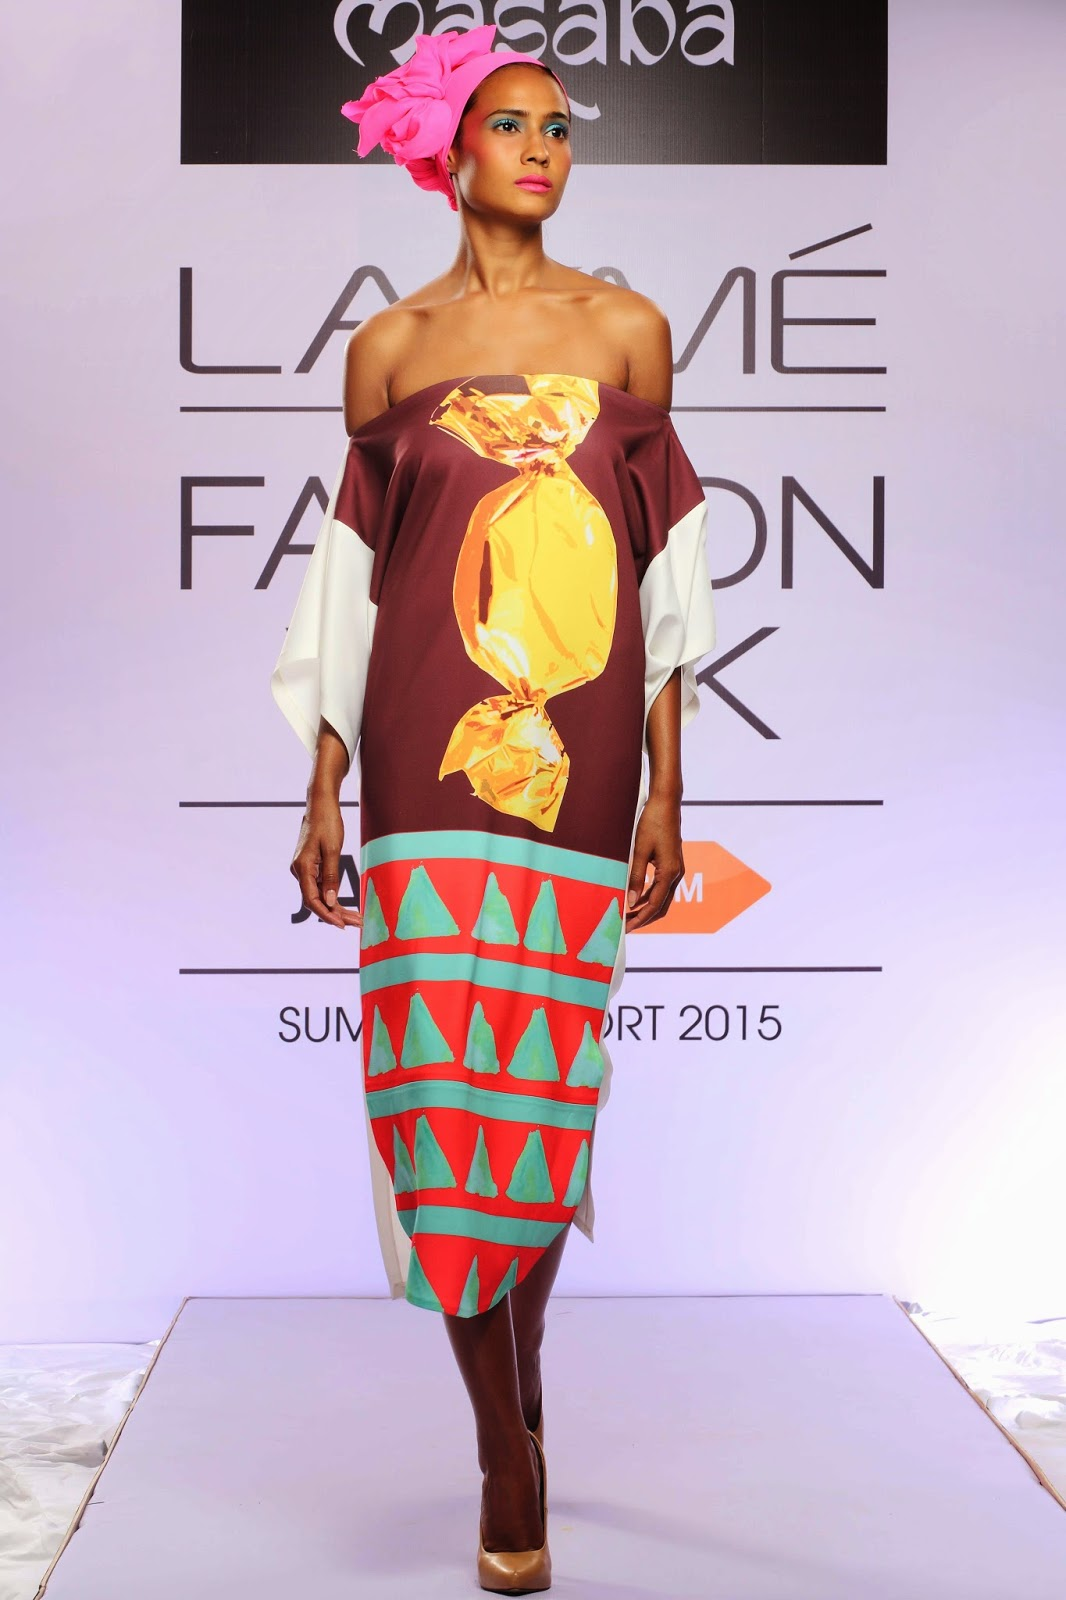 http://aquaintperspective.blogspot.in/, LIFW Day 1, Masaba Gupta